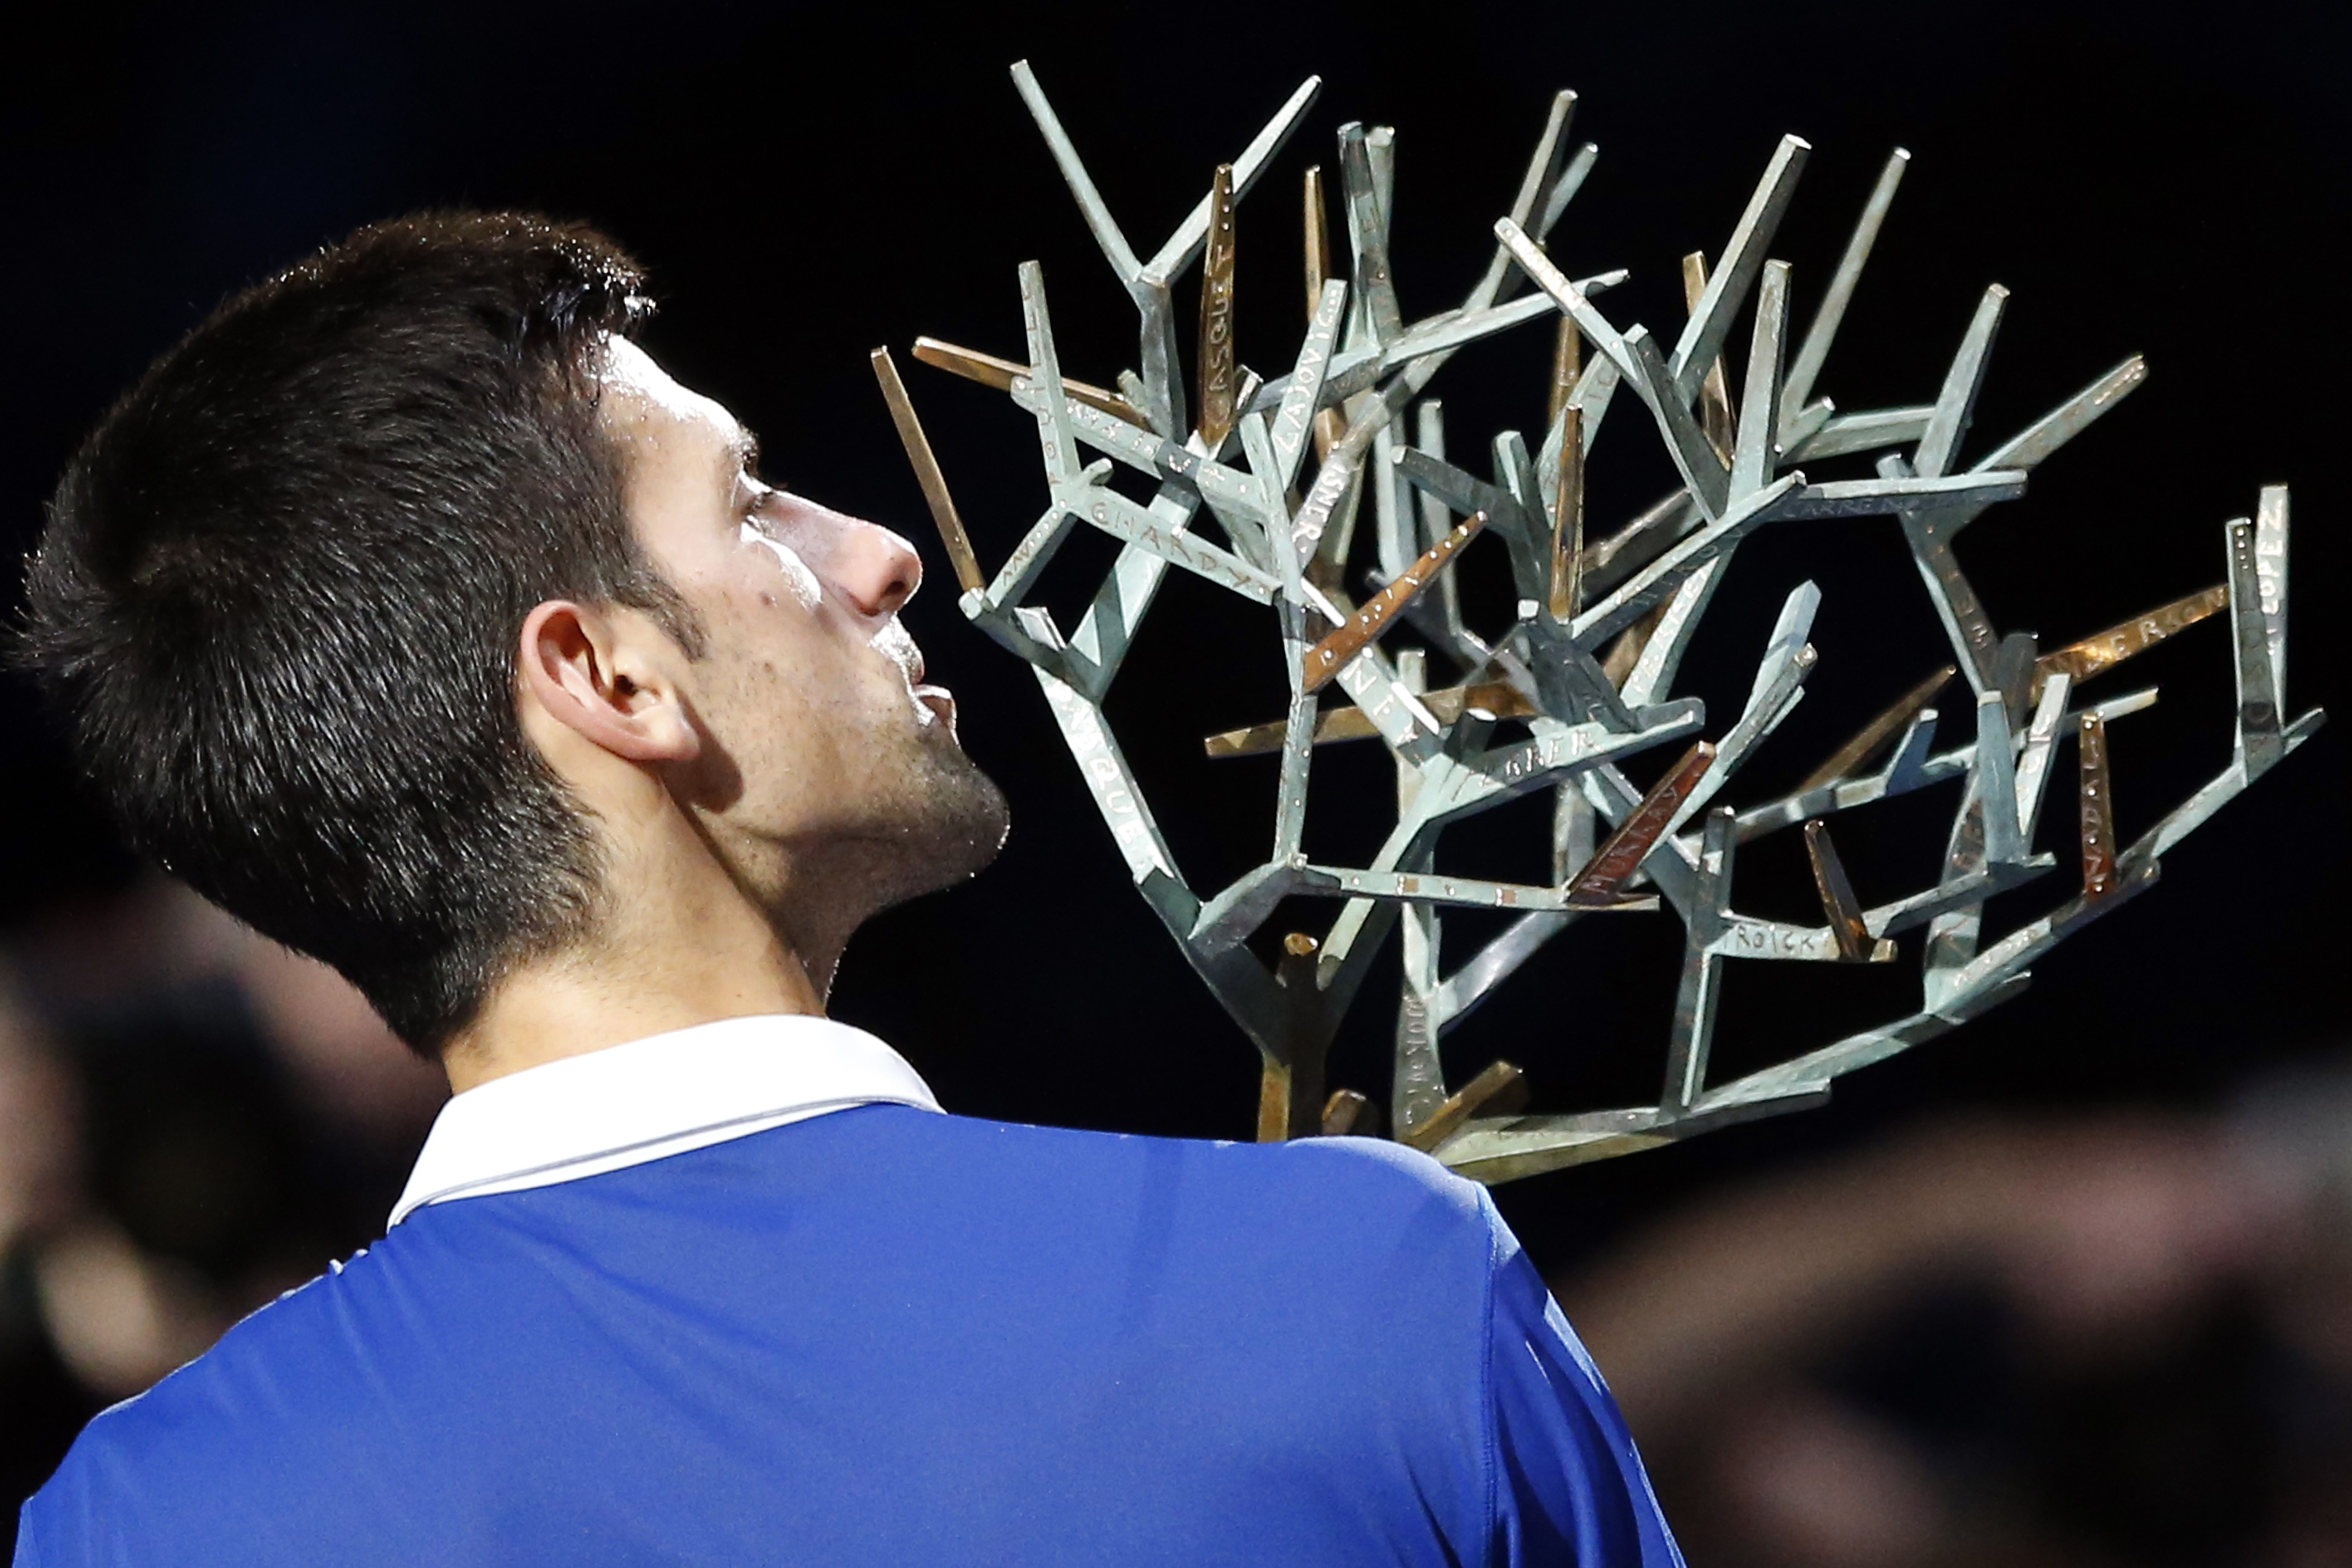 Serbia's Novak Djokovic poses with the trophy after winning Britain's Andy Murrray during their final match of the BNP Masters tennis tournament at the Paris Bercy Arena in Paris, France, Sunday, Nov. 8, 2015. Djokovic wins 6-2, 6-4. (AP Photo/Francois Mo